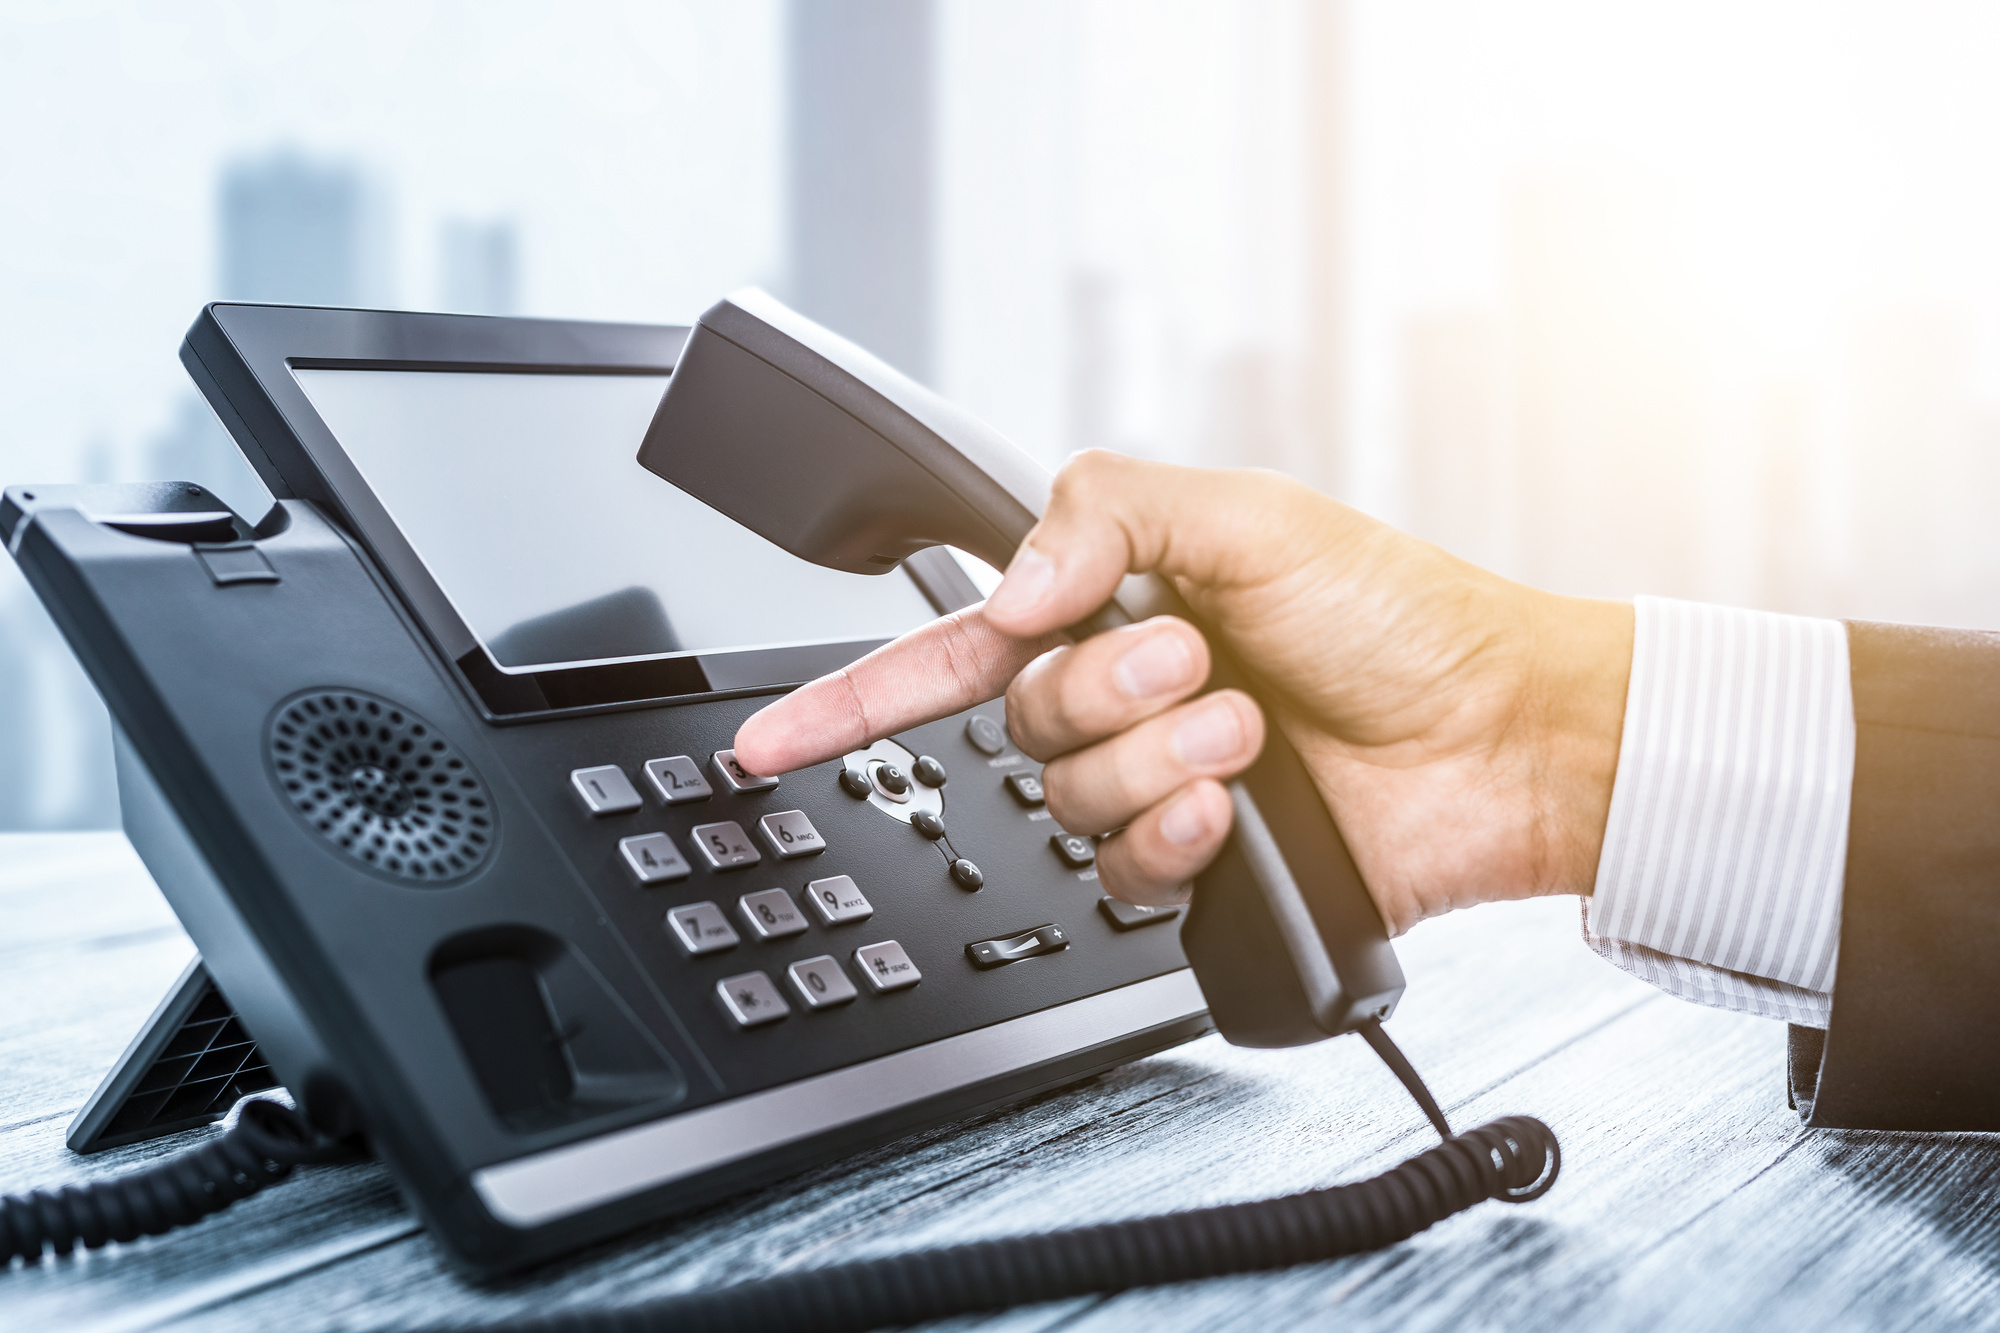 Not Sure About VoIP?: Check Out the Top 7 Benefits of a VoIP Phone System